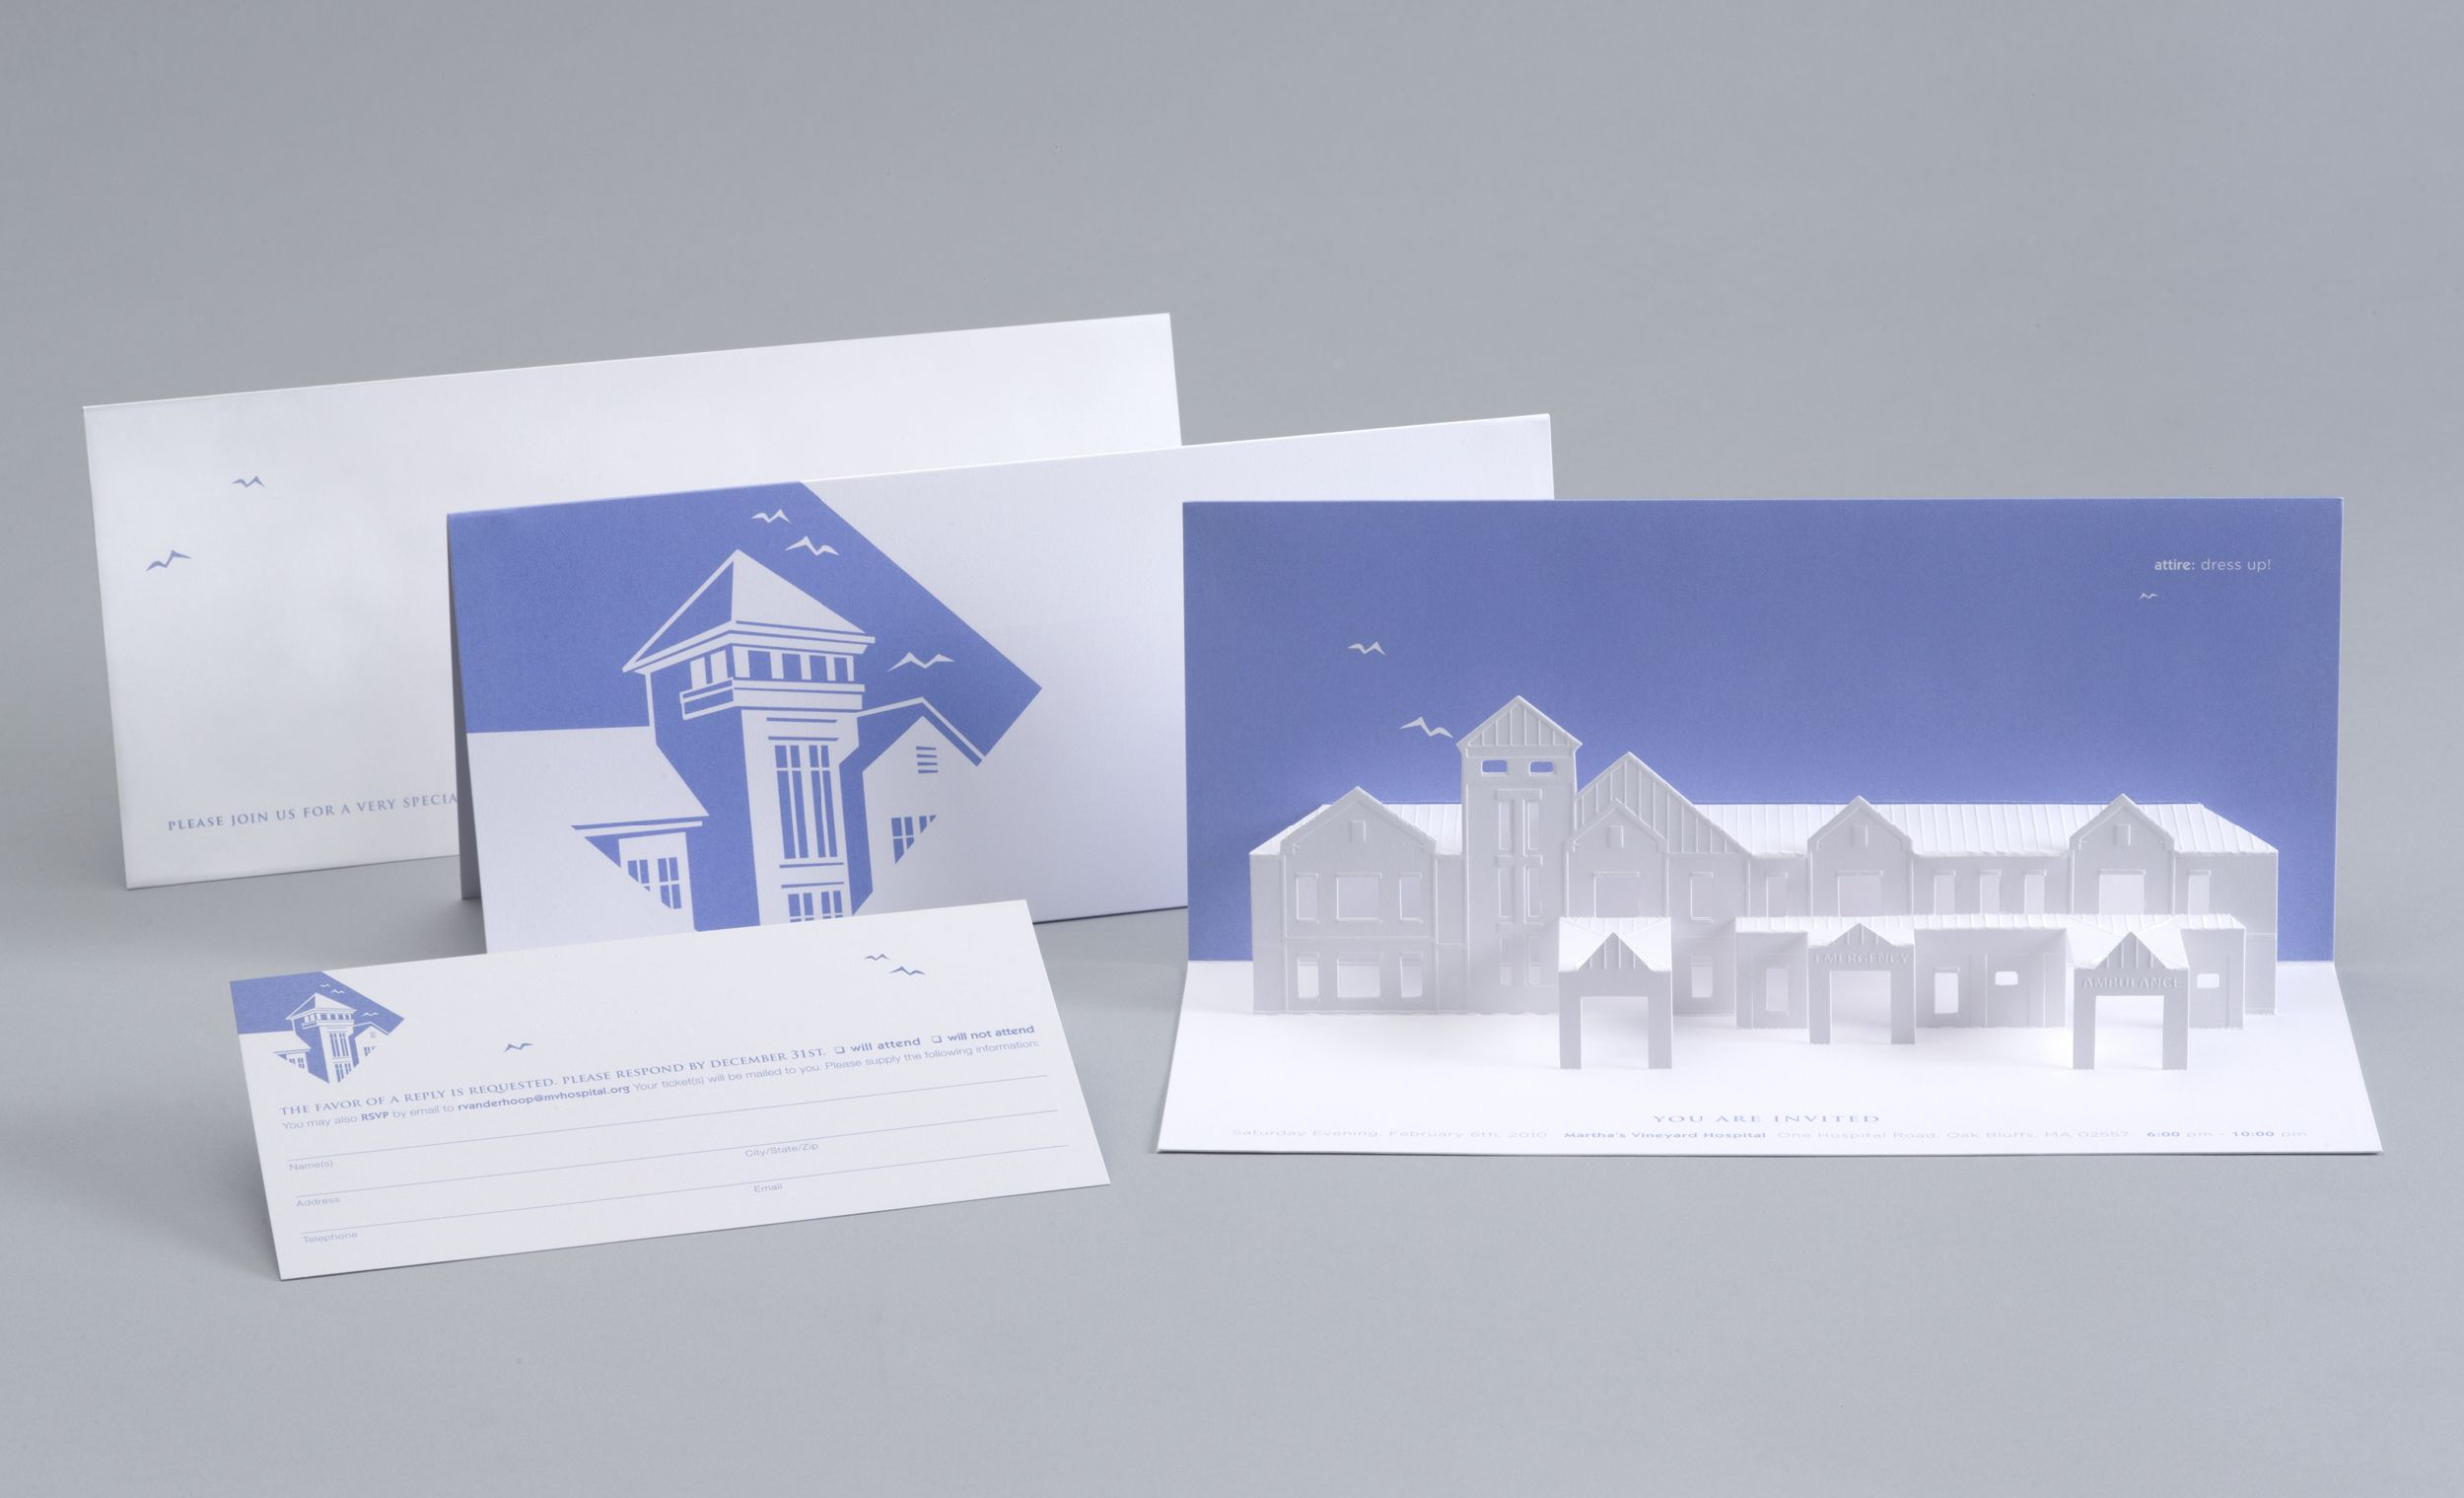 invitations & event collateral – Categories –   Aiga design, Invitations, Invitation  design